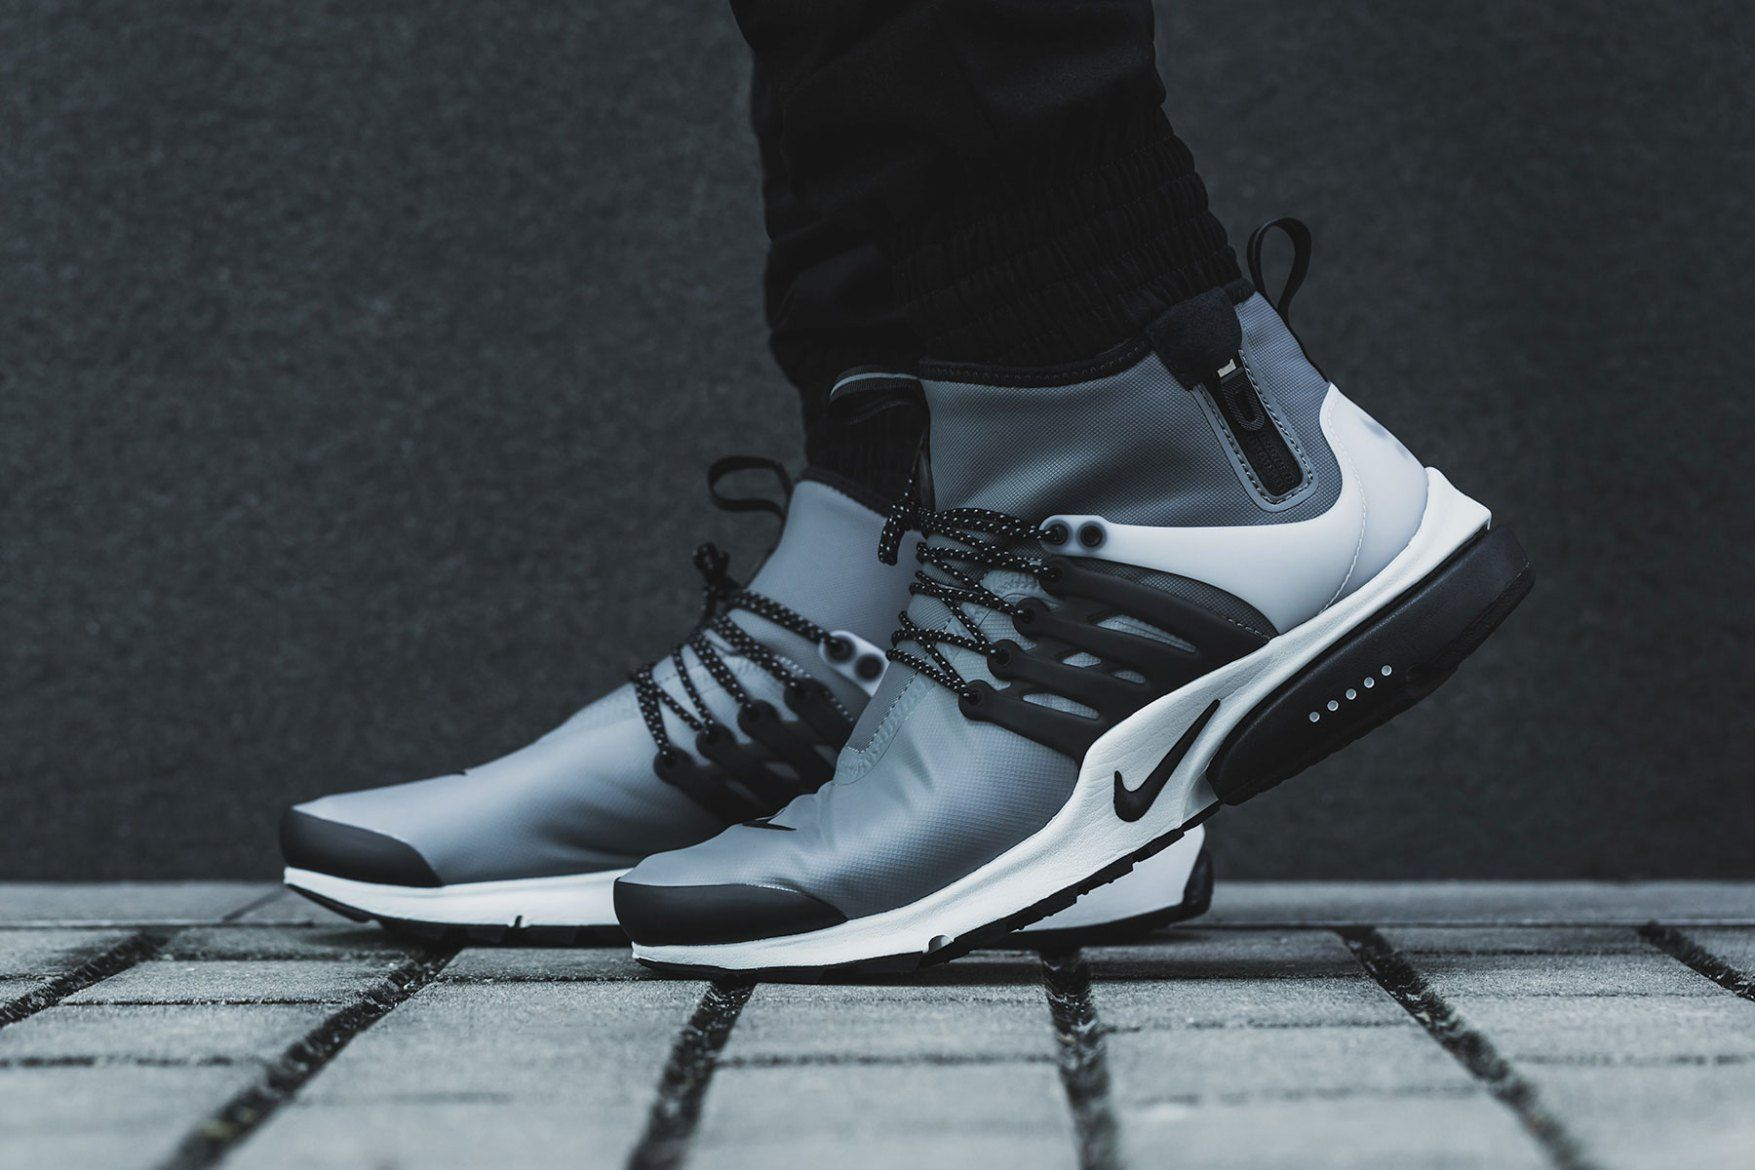 ad483f3fb2b9 Get a Closer Look at the Nike Air Presto Mid Utility s Weatherized ...